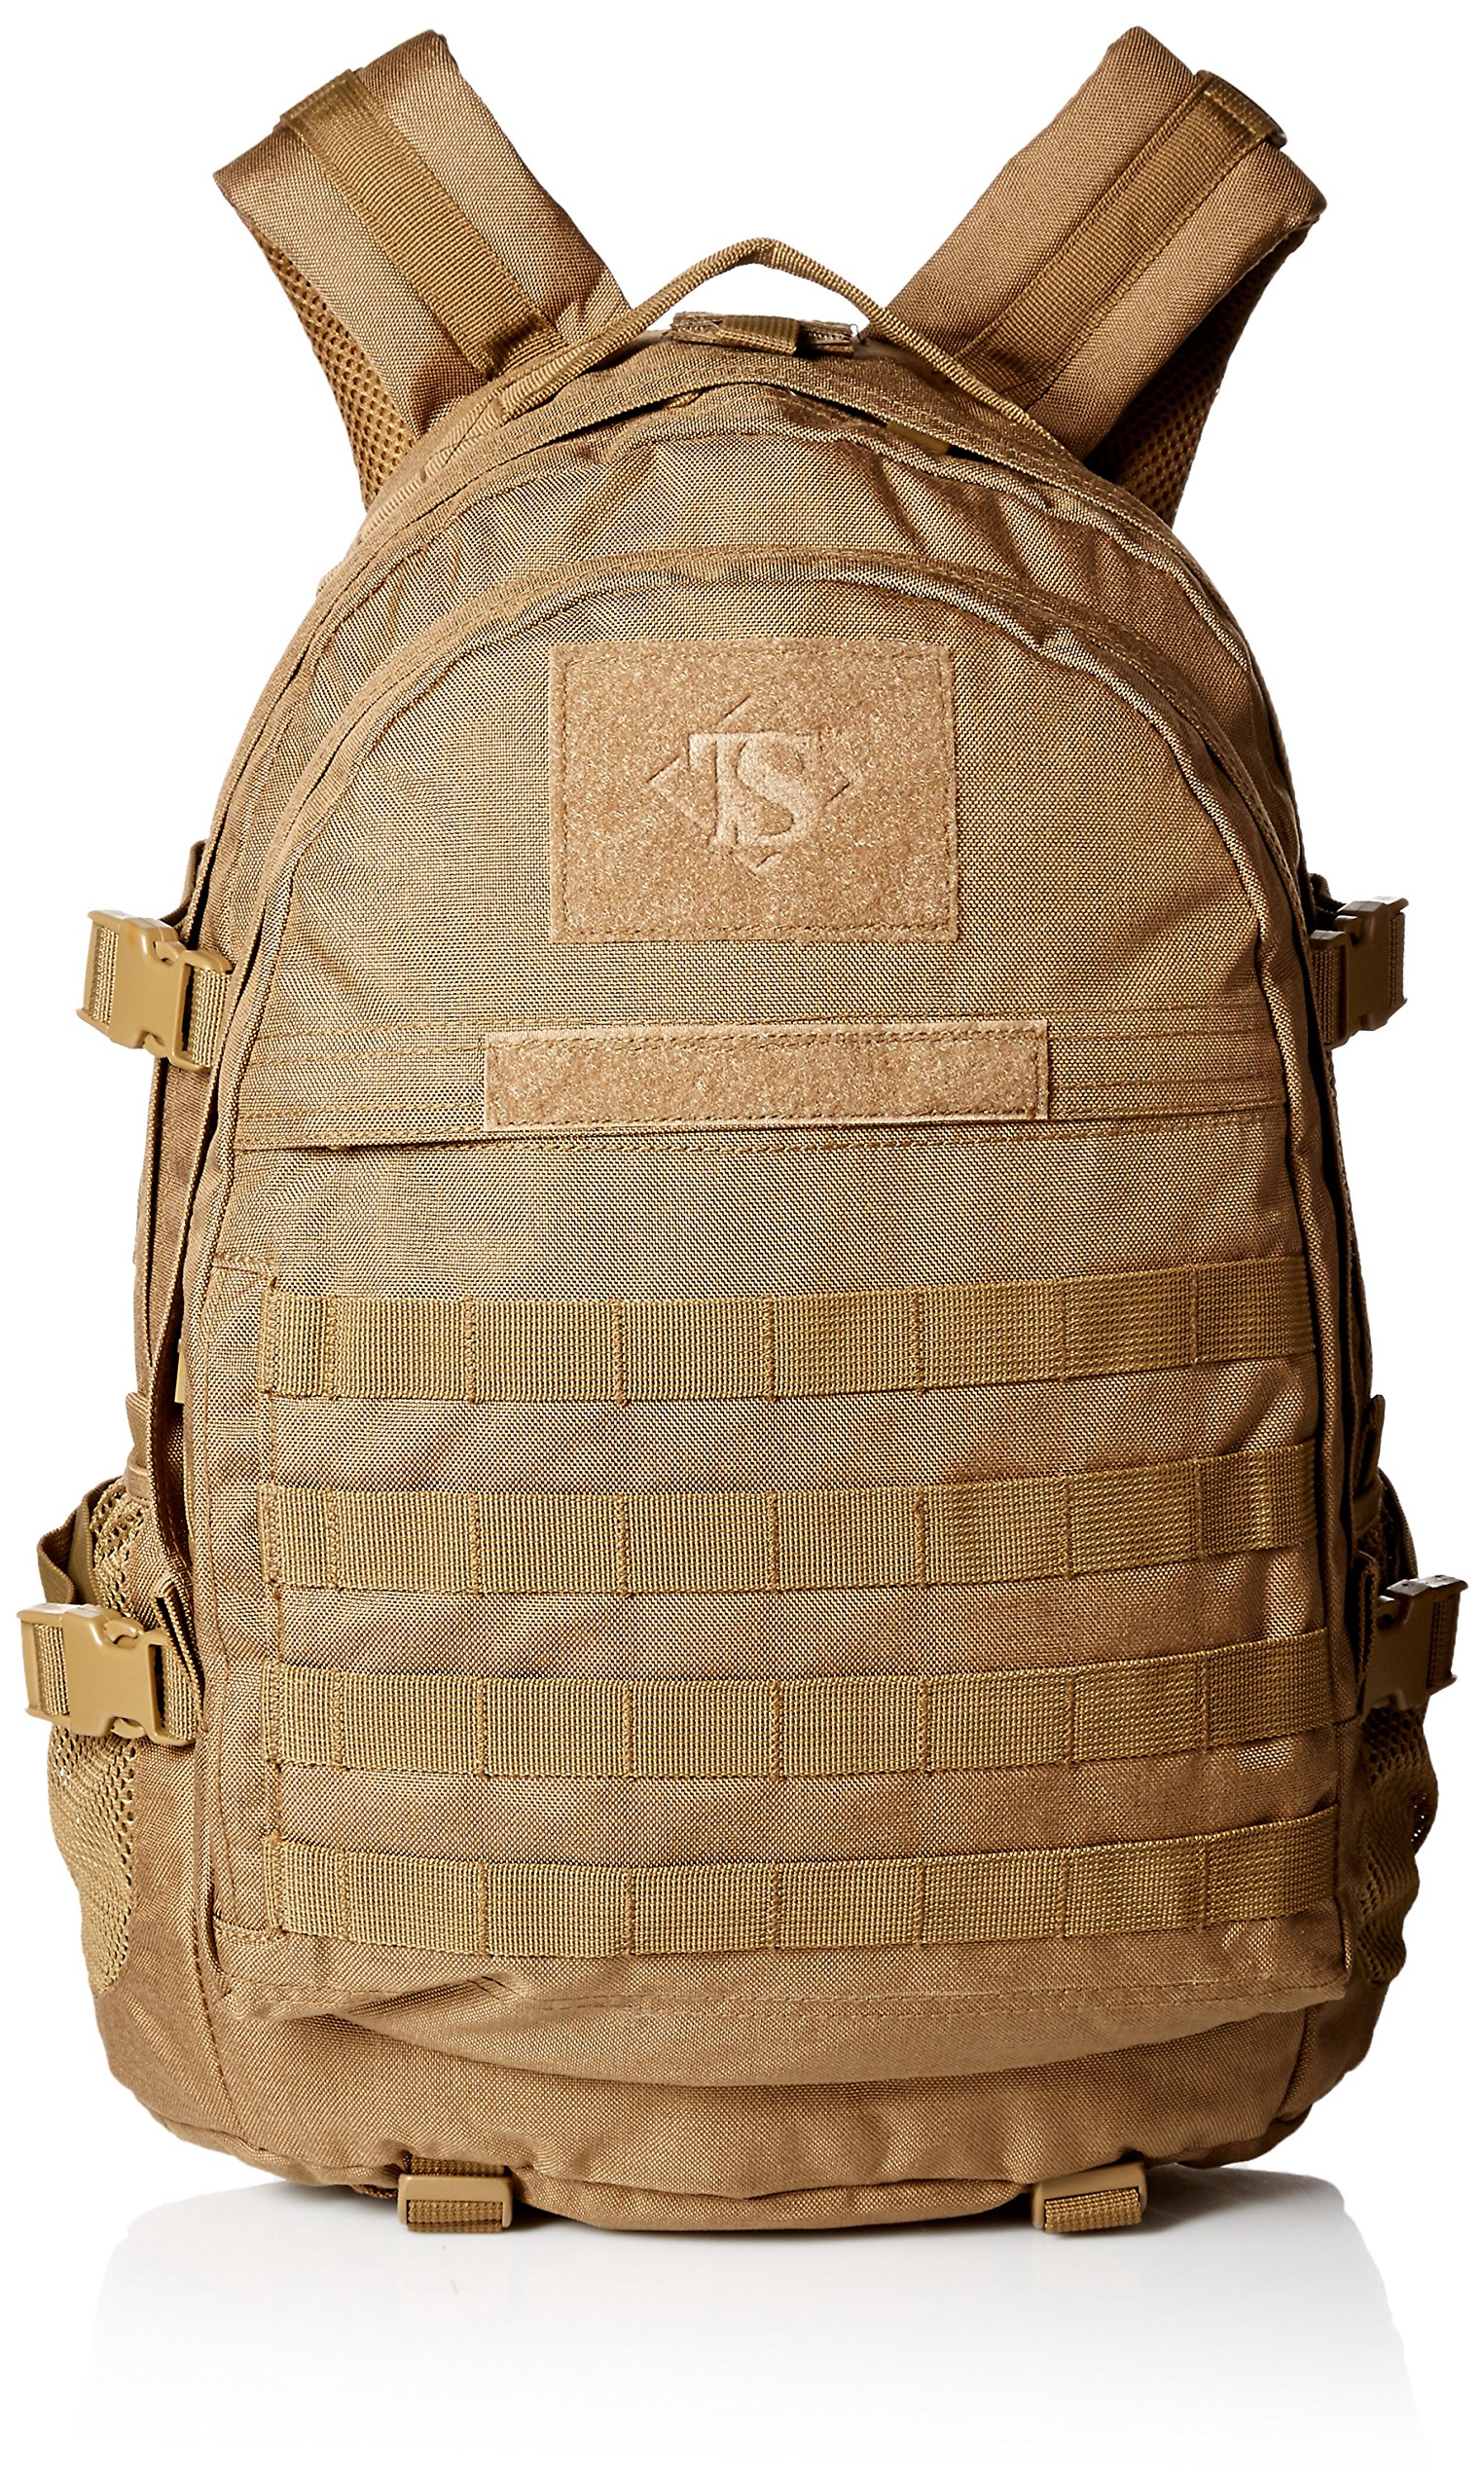 TRU-SPEC Backpack, Coy Elite 3-day, Coyote, One Size